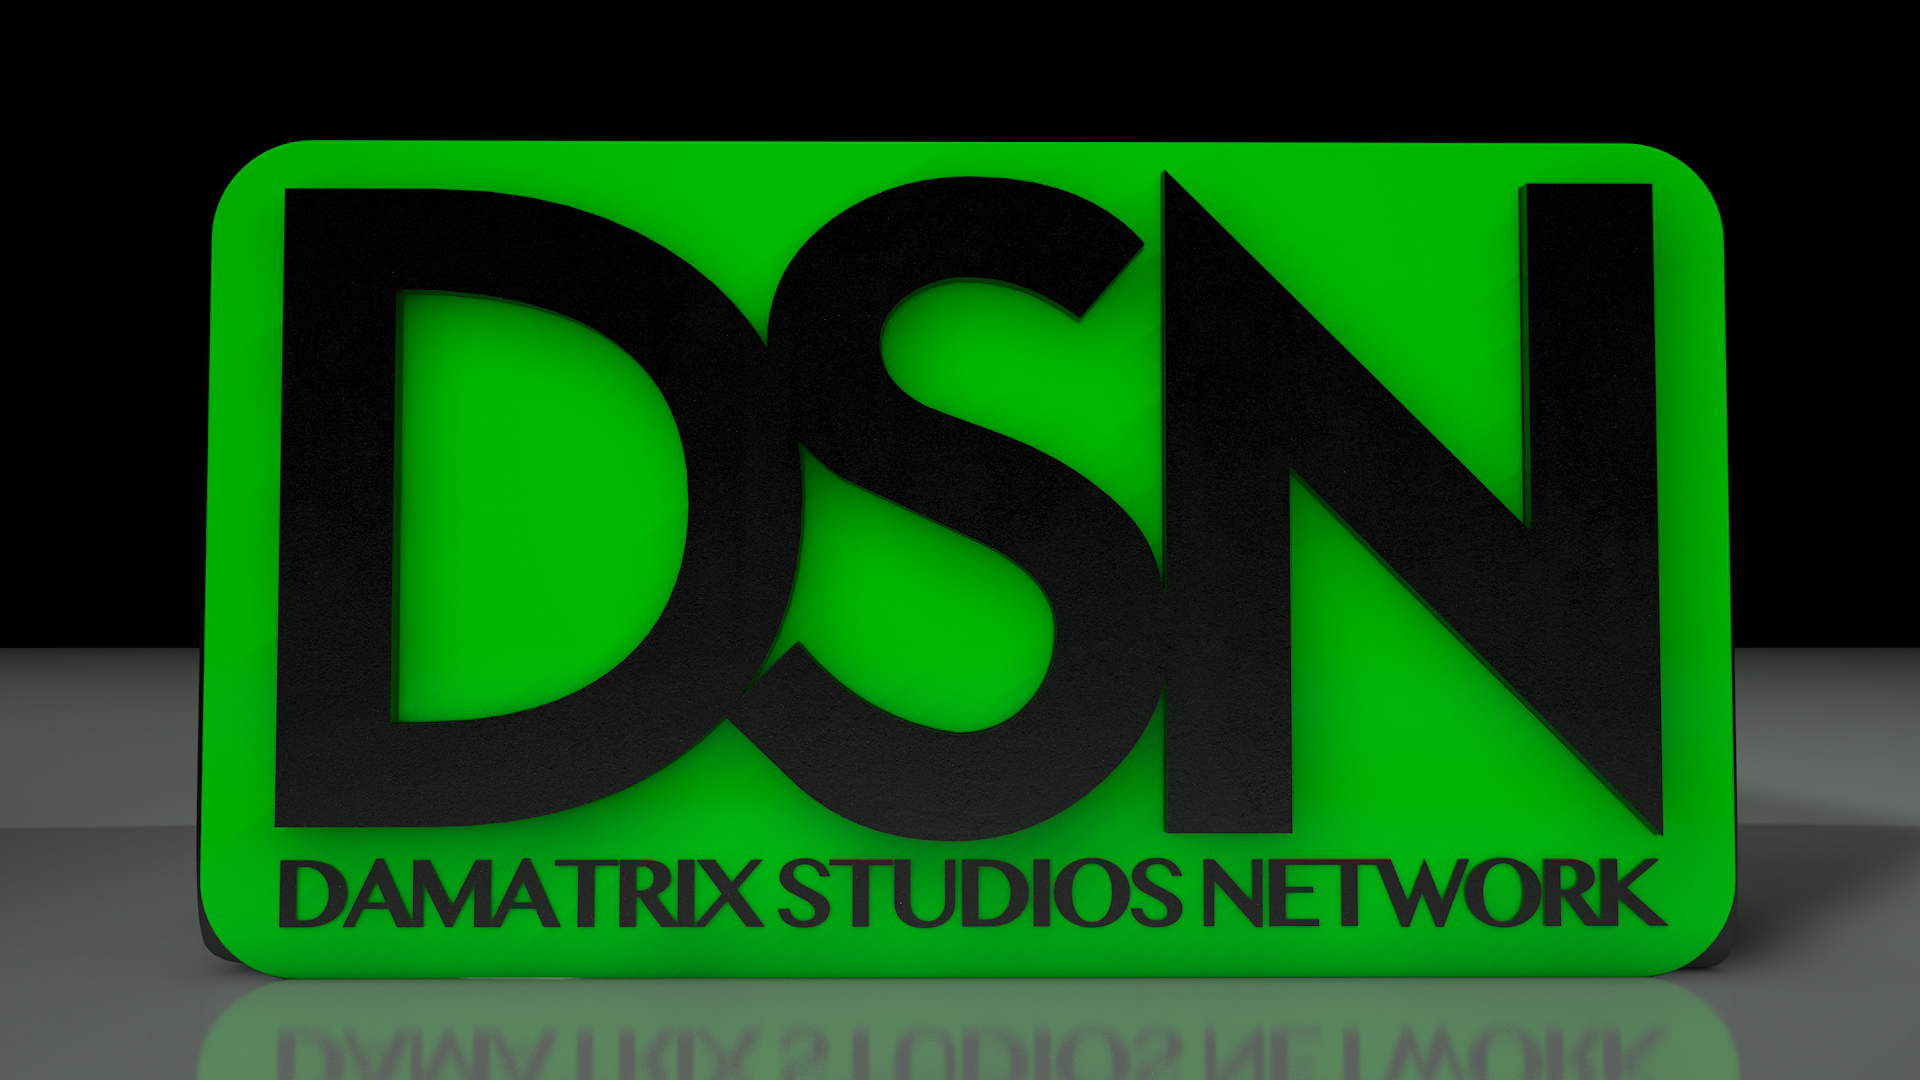 DaMatrix Studio Network